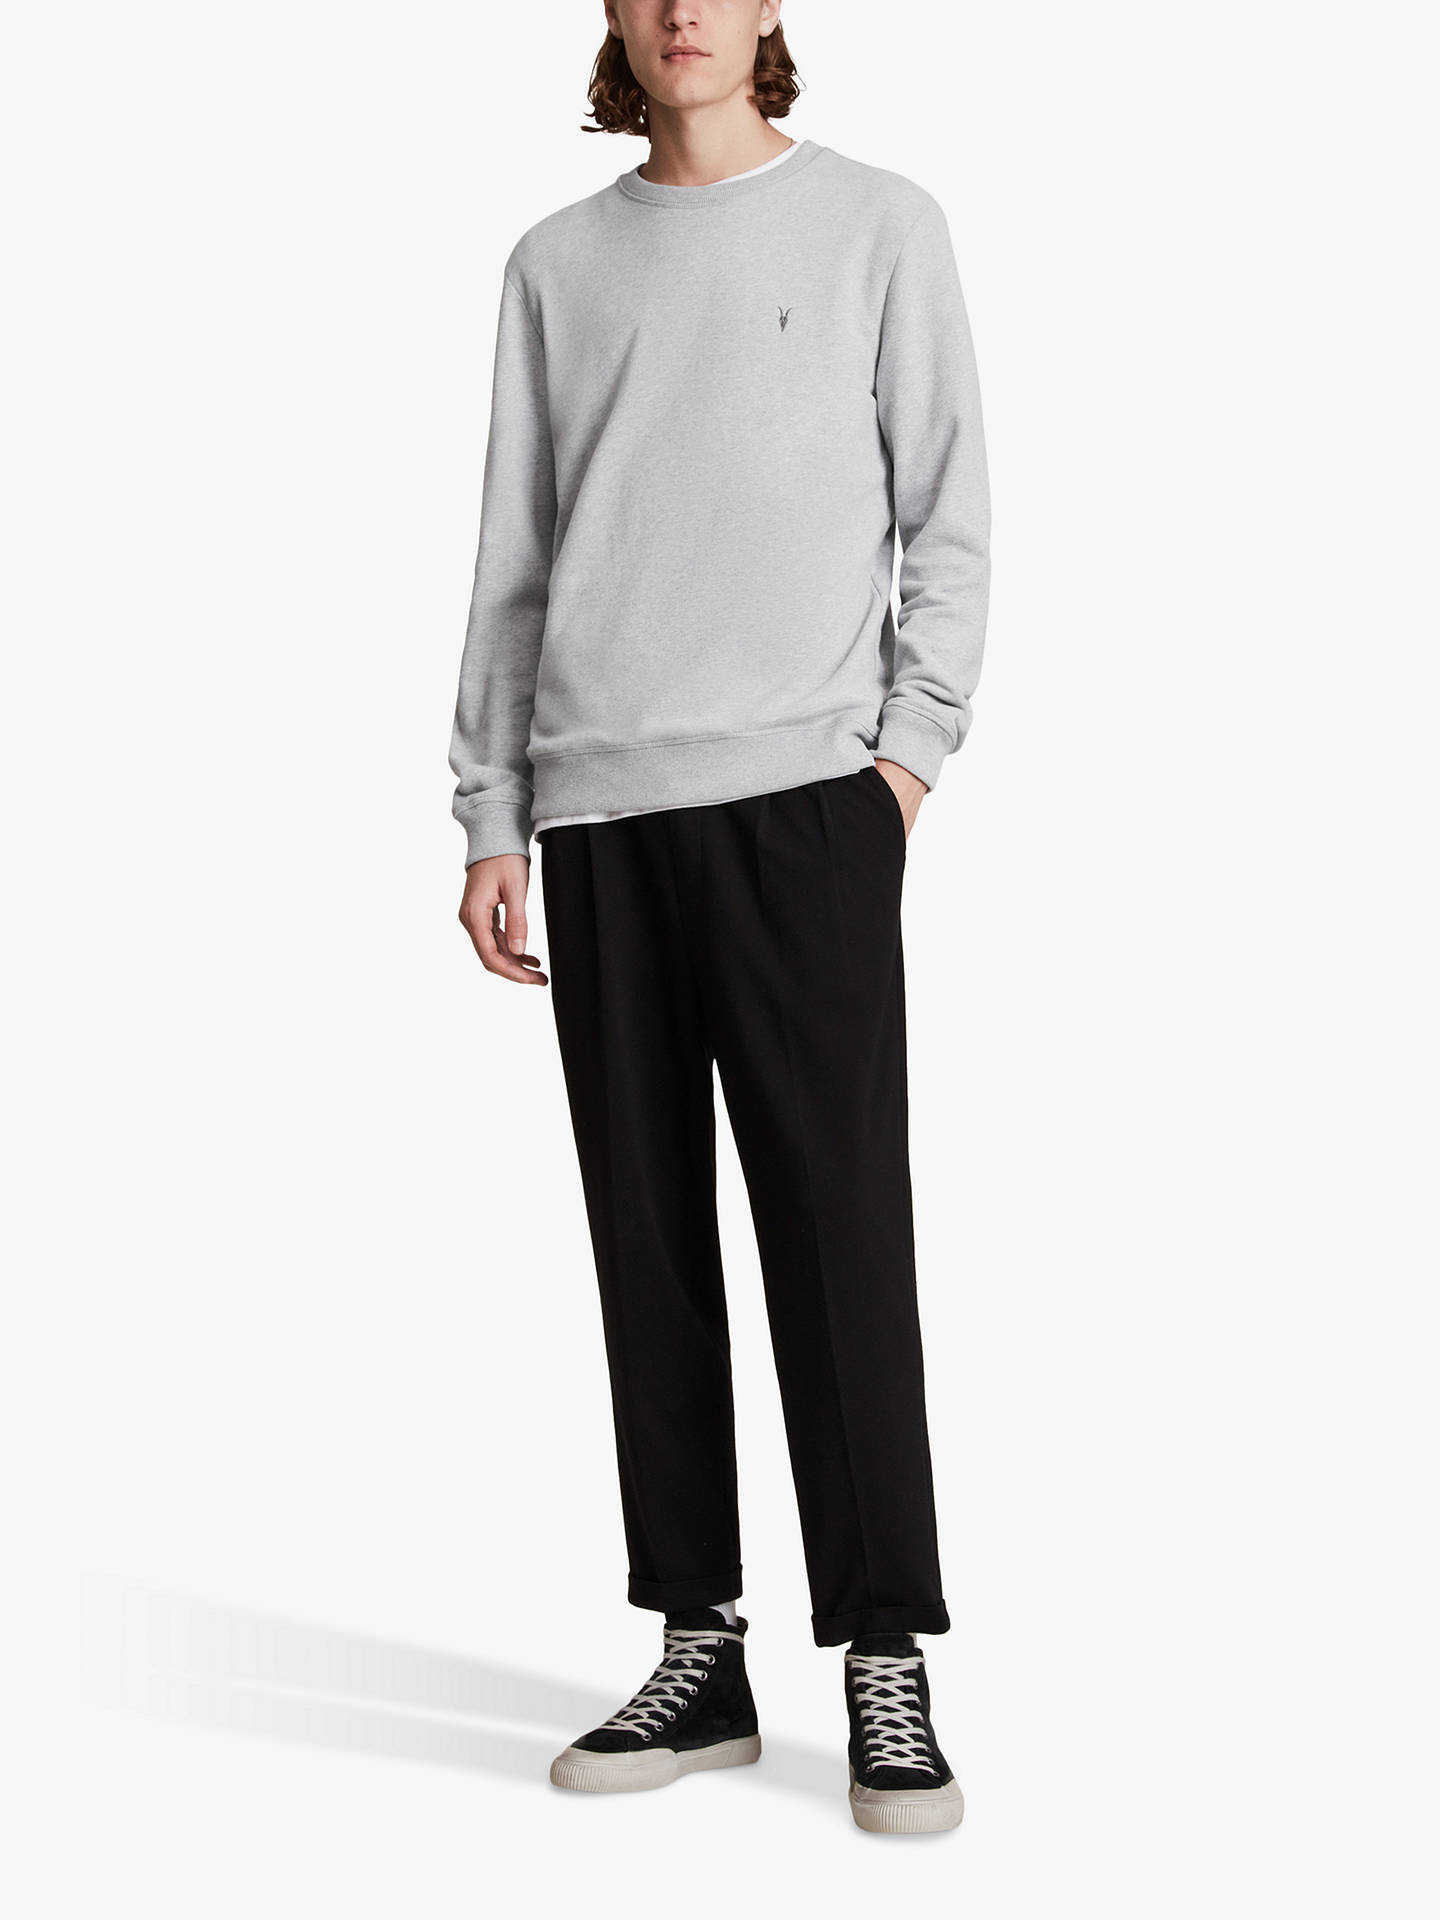 BuyAllSaints Raven Crew Neck Jumper, Grey Marl, XS Online at johnlewis.com